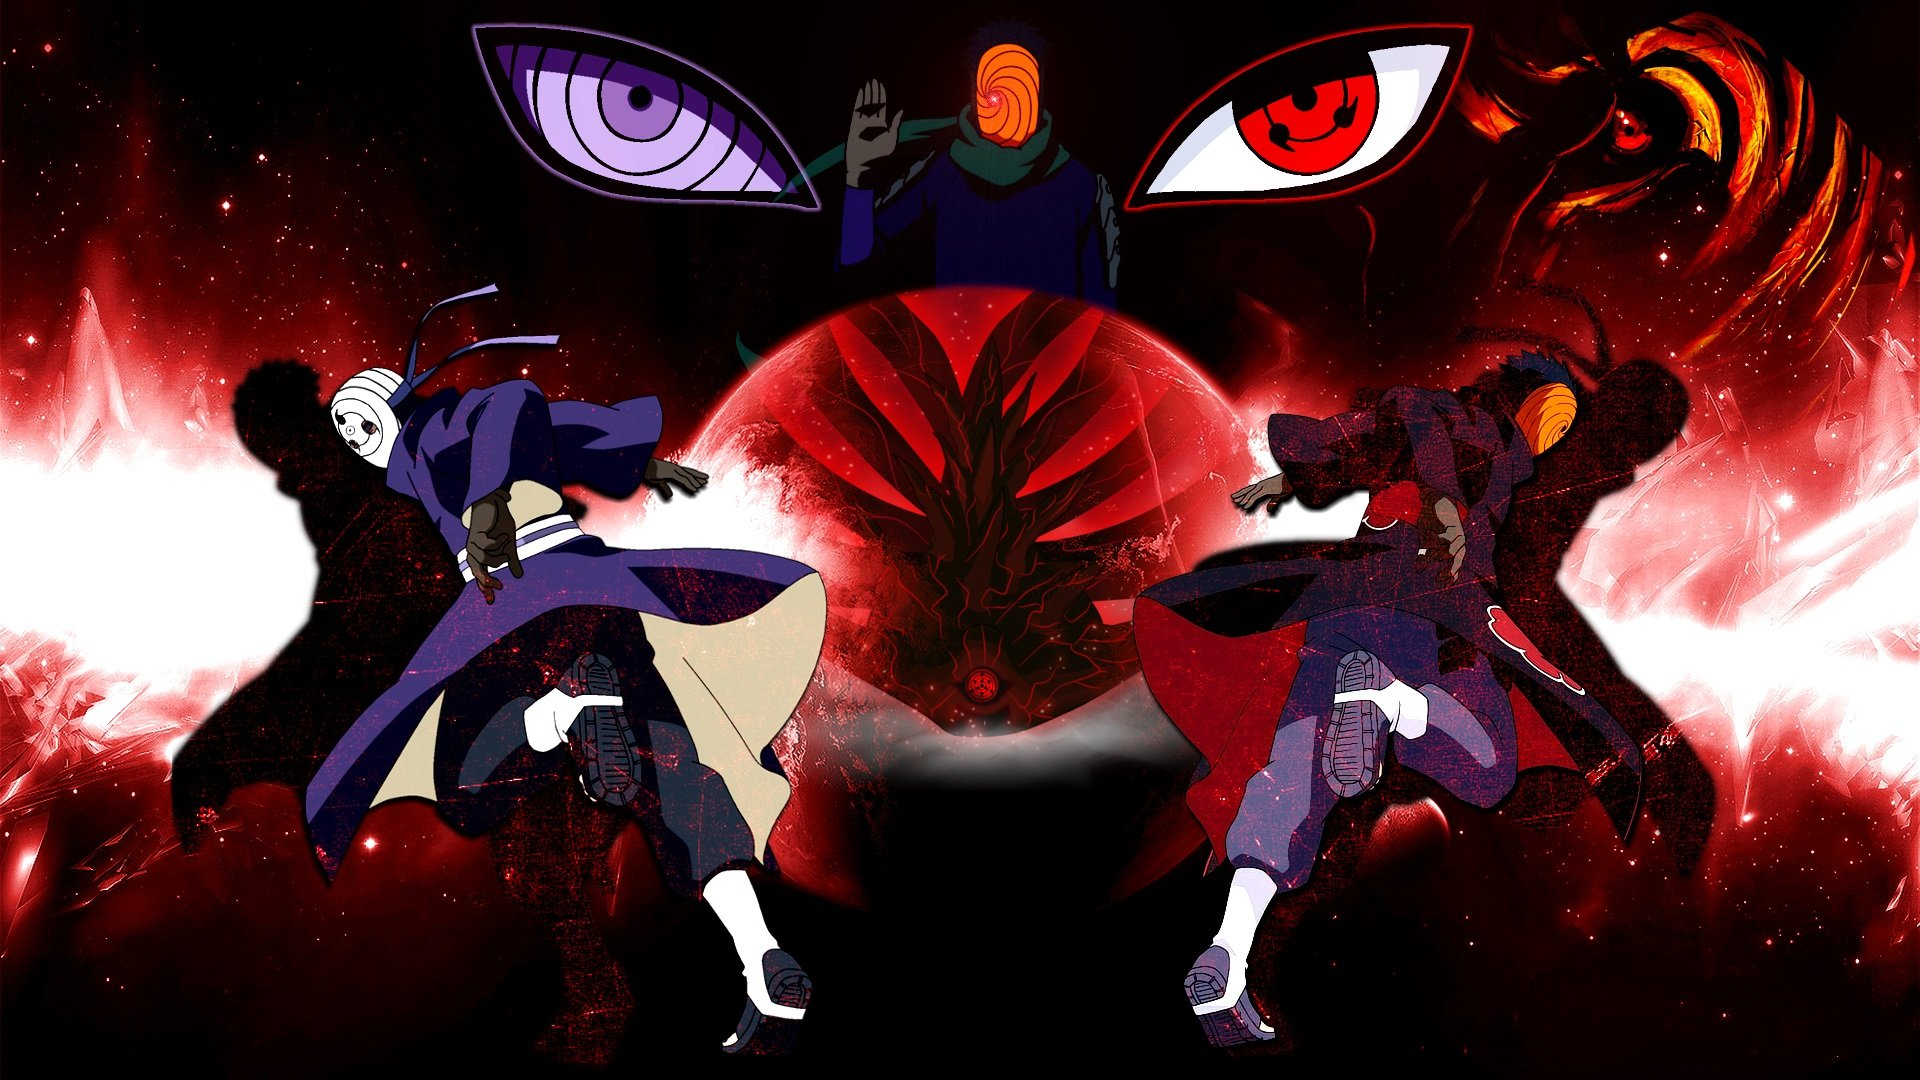 wallpaper uchiha clan  HD Photo Wallpaper Collection HD WALLPAPERS 1920x1080